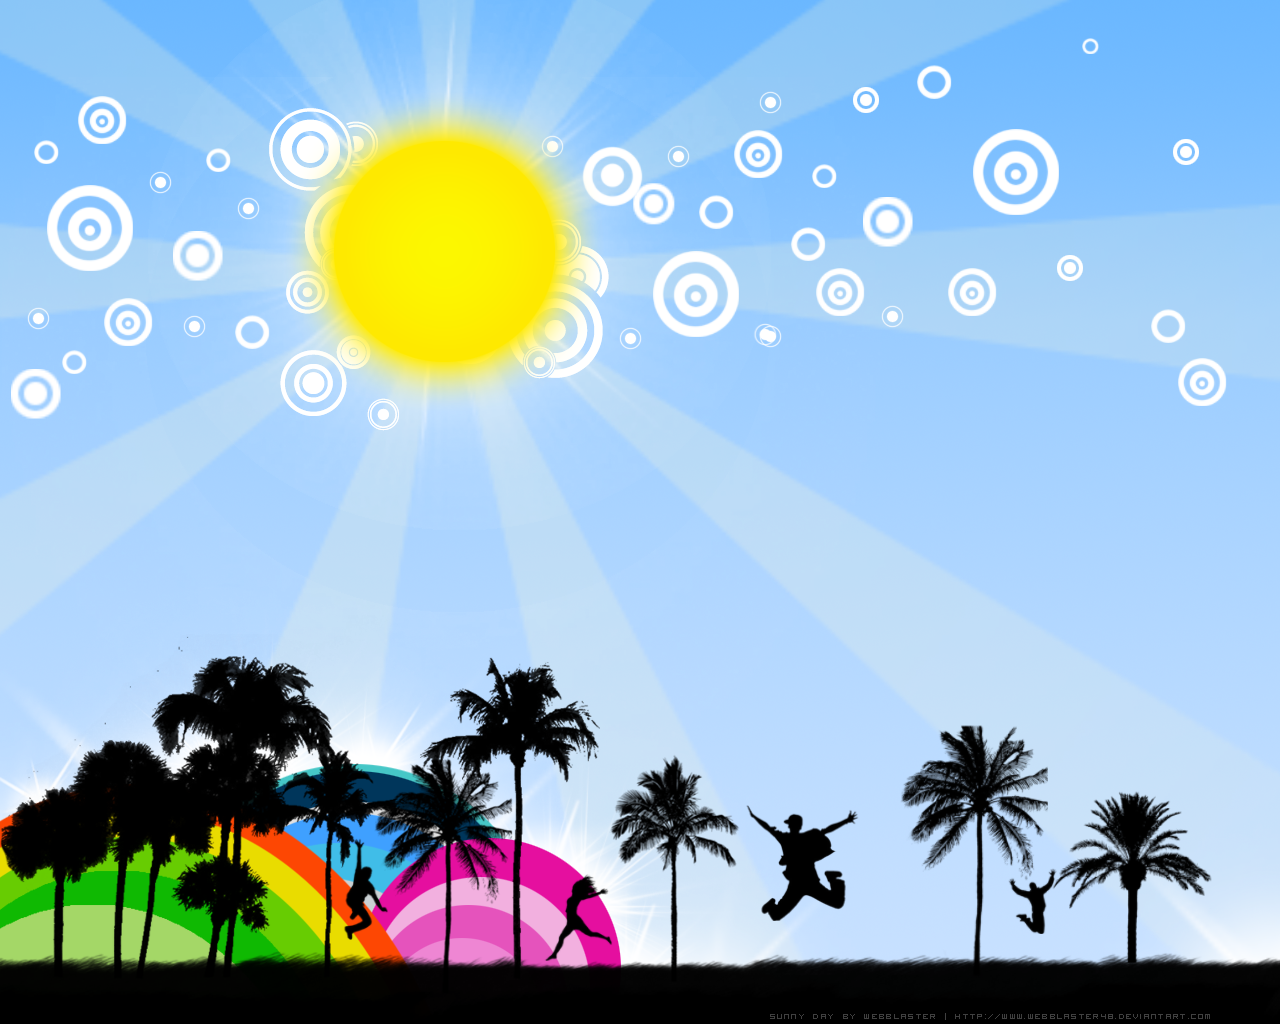 Line Drawing Sunny Day : Sunny day by webblaster on deviantart